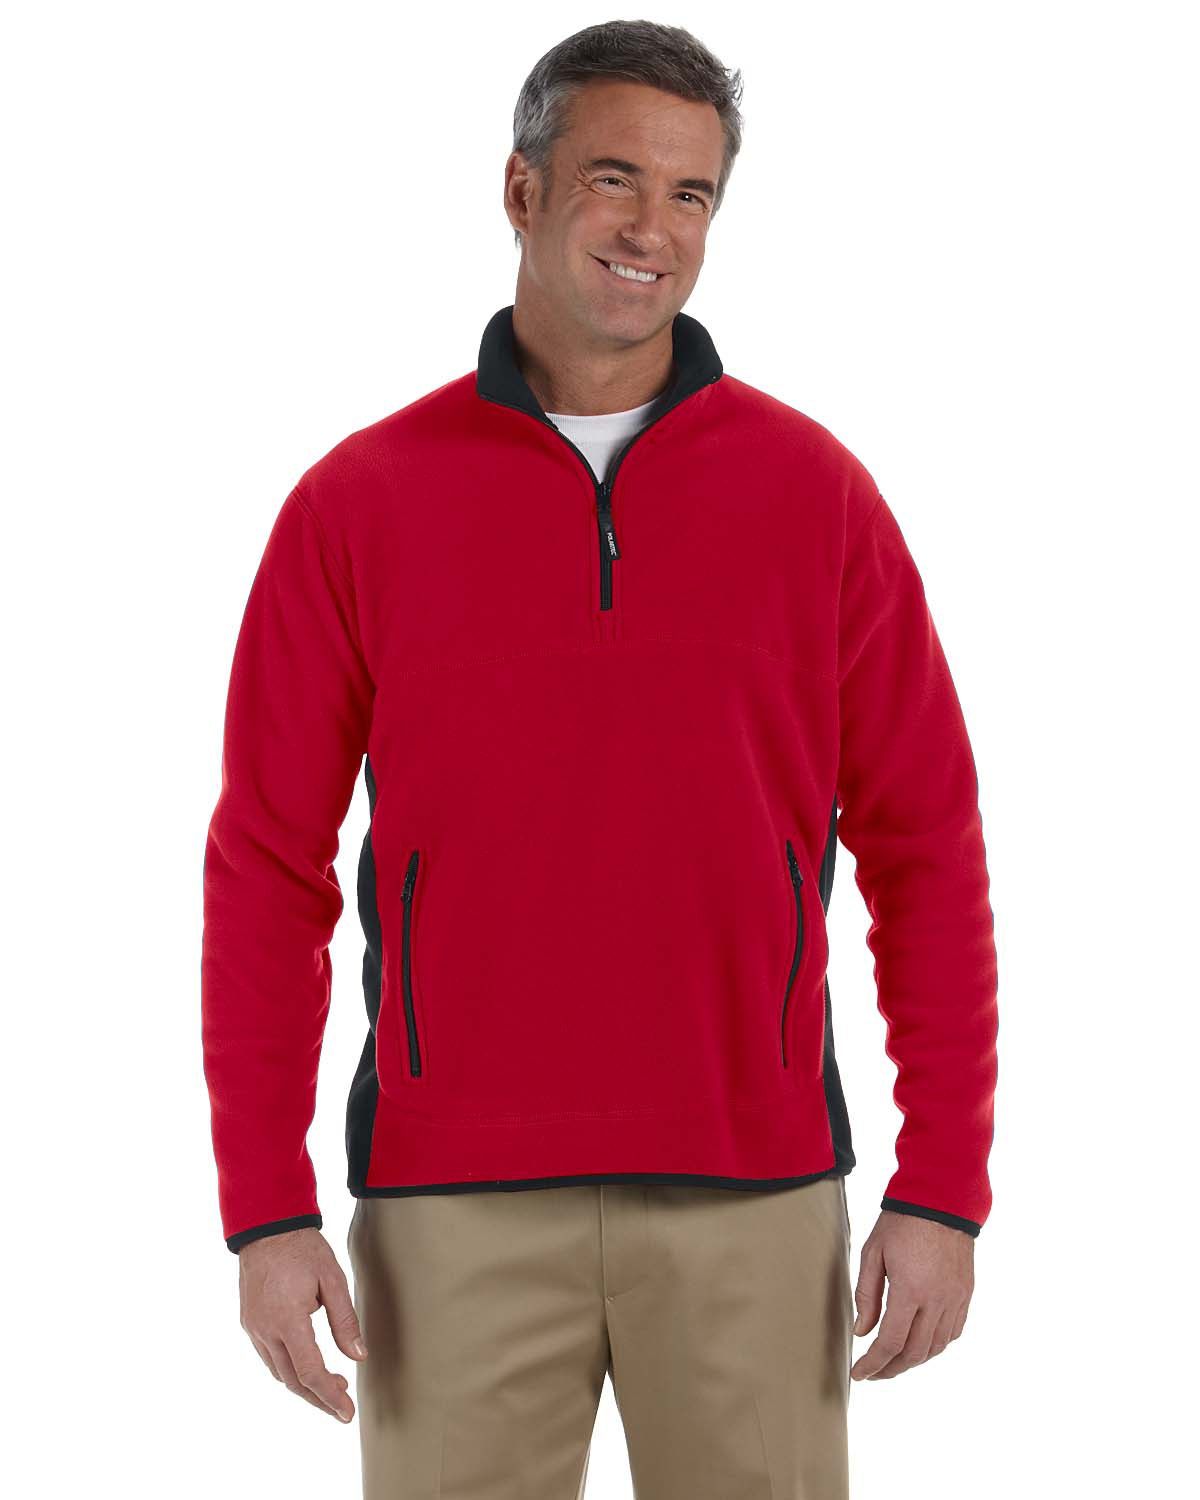 Quarter Zip Sweatshirts, 1/4 Zip Pullover, Fleece Pullovers, Half ...